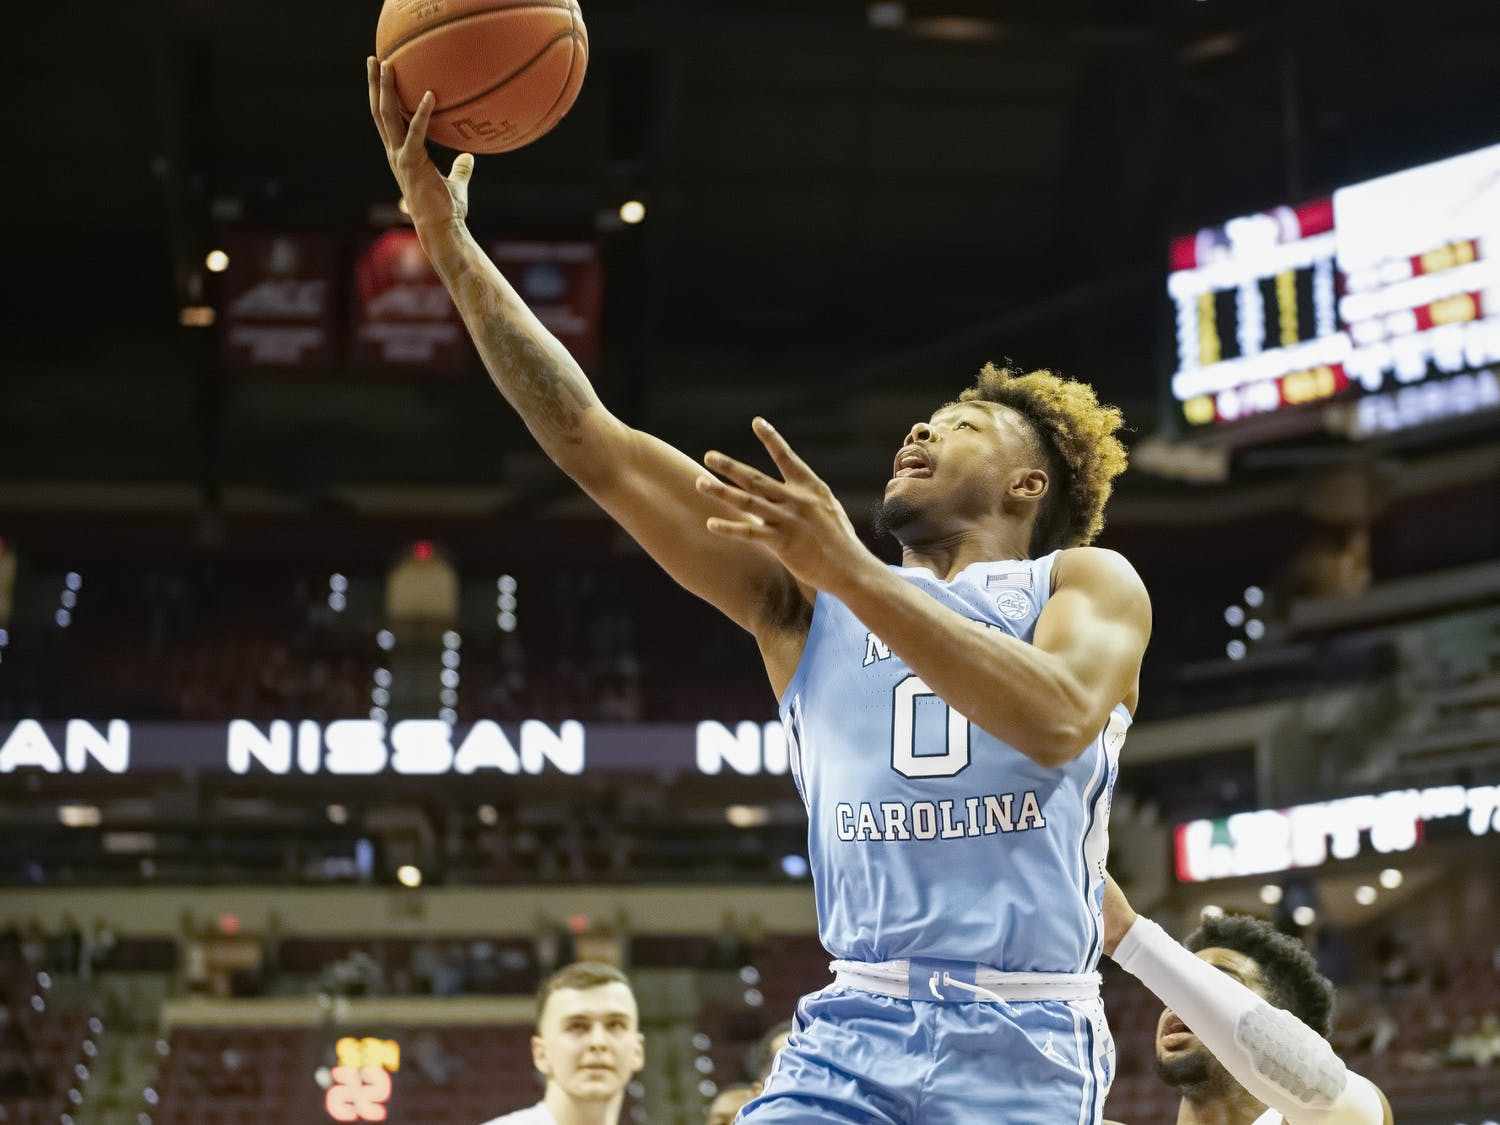 UNC redshirt first year Anthony Harris (0) attempts a layup during a game against Florida State on Saturday, Jan. 16, 2021. UNC fell to FSU 72-85. Photo courtesy of Miguel A. Olivella, Jr.